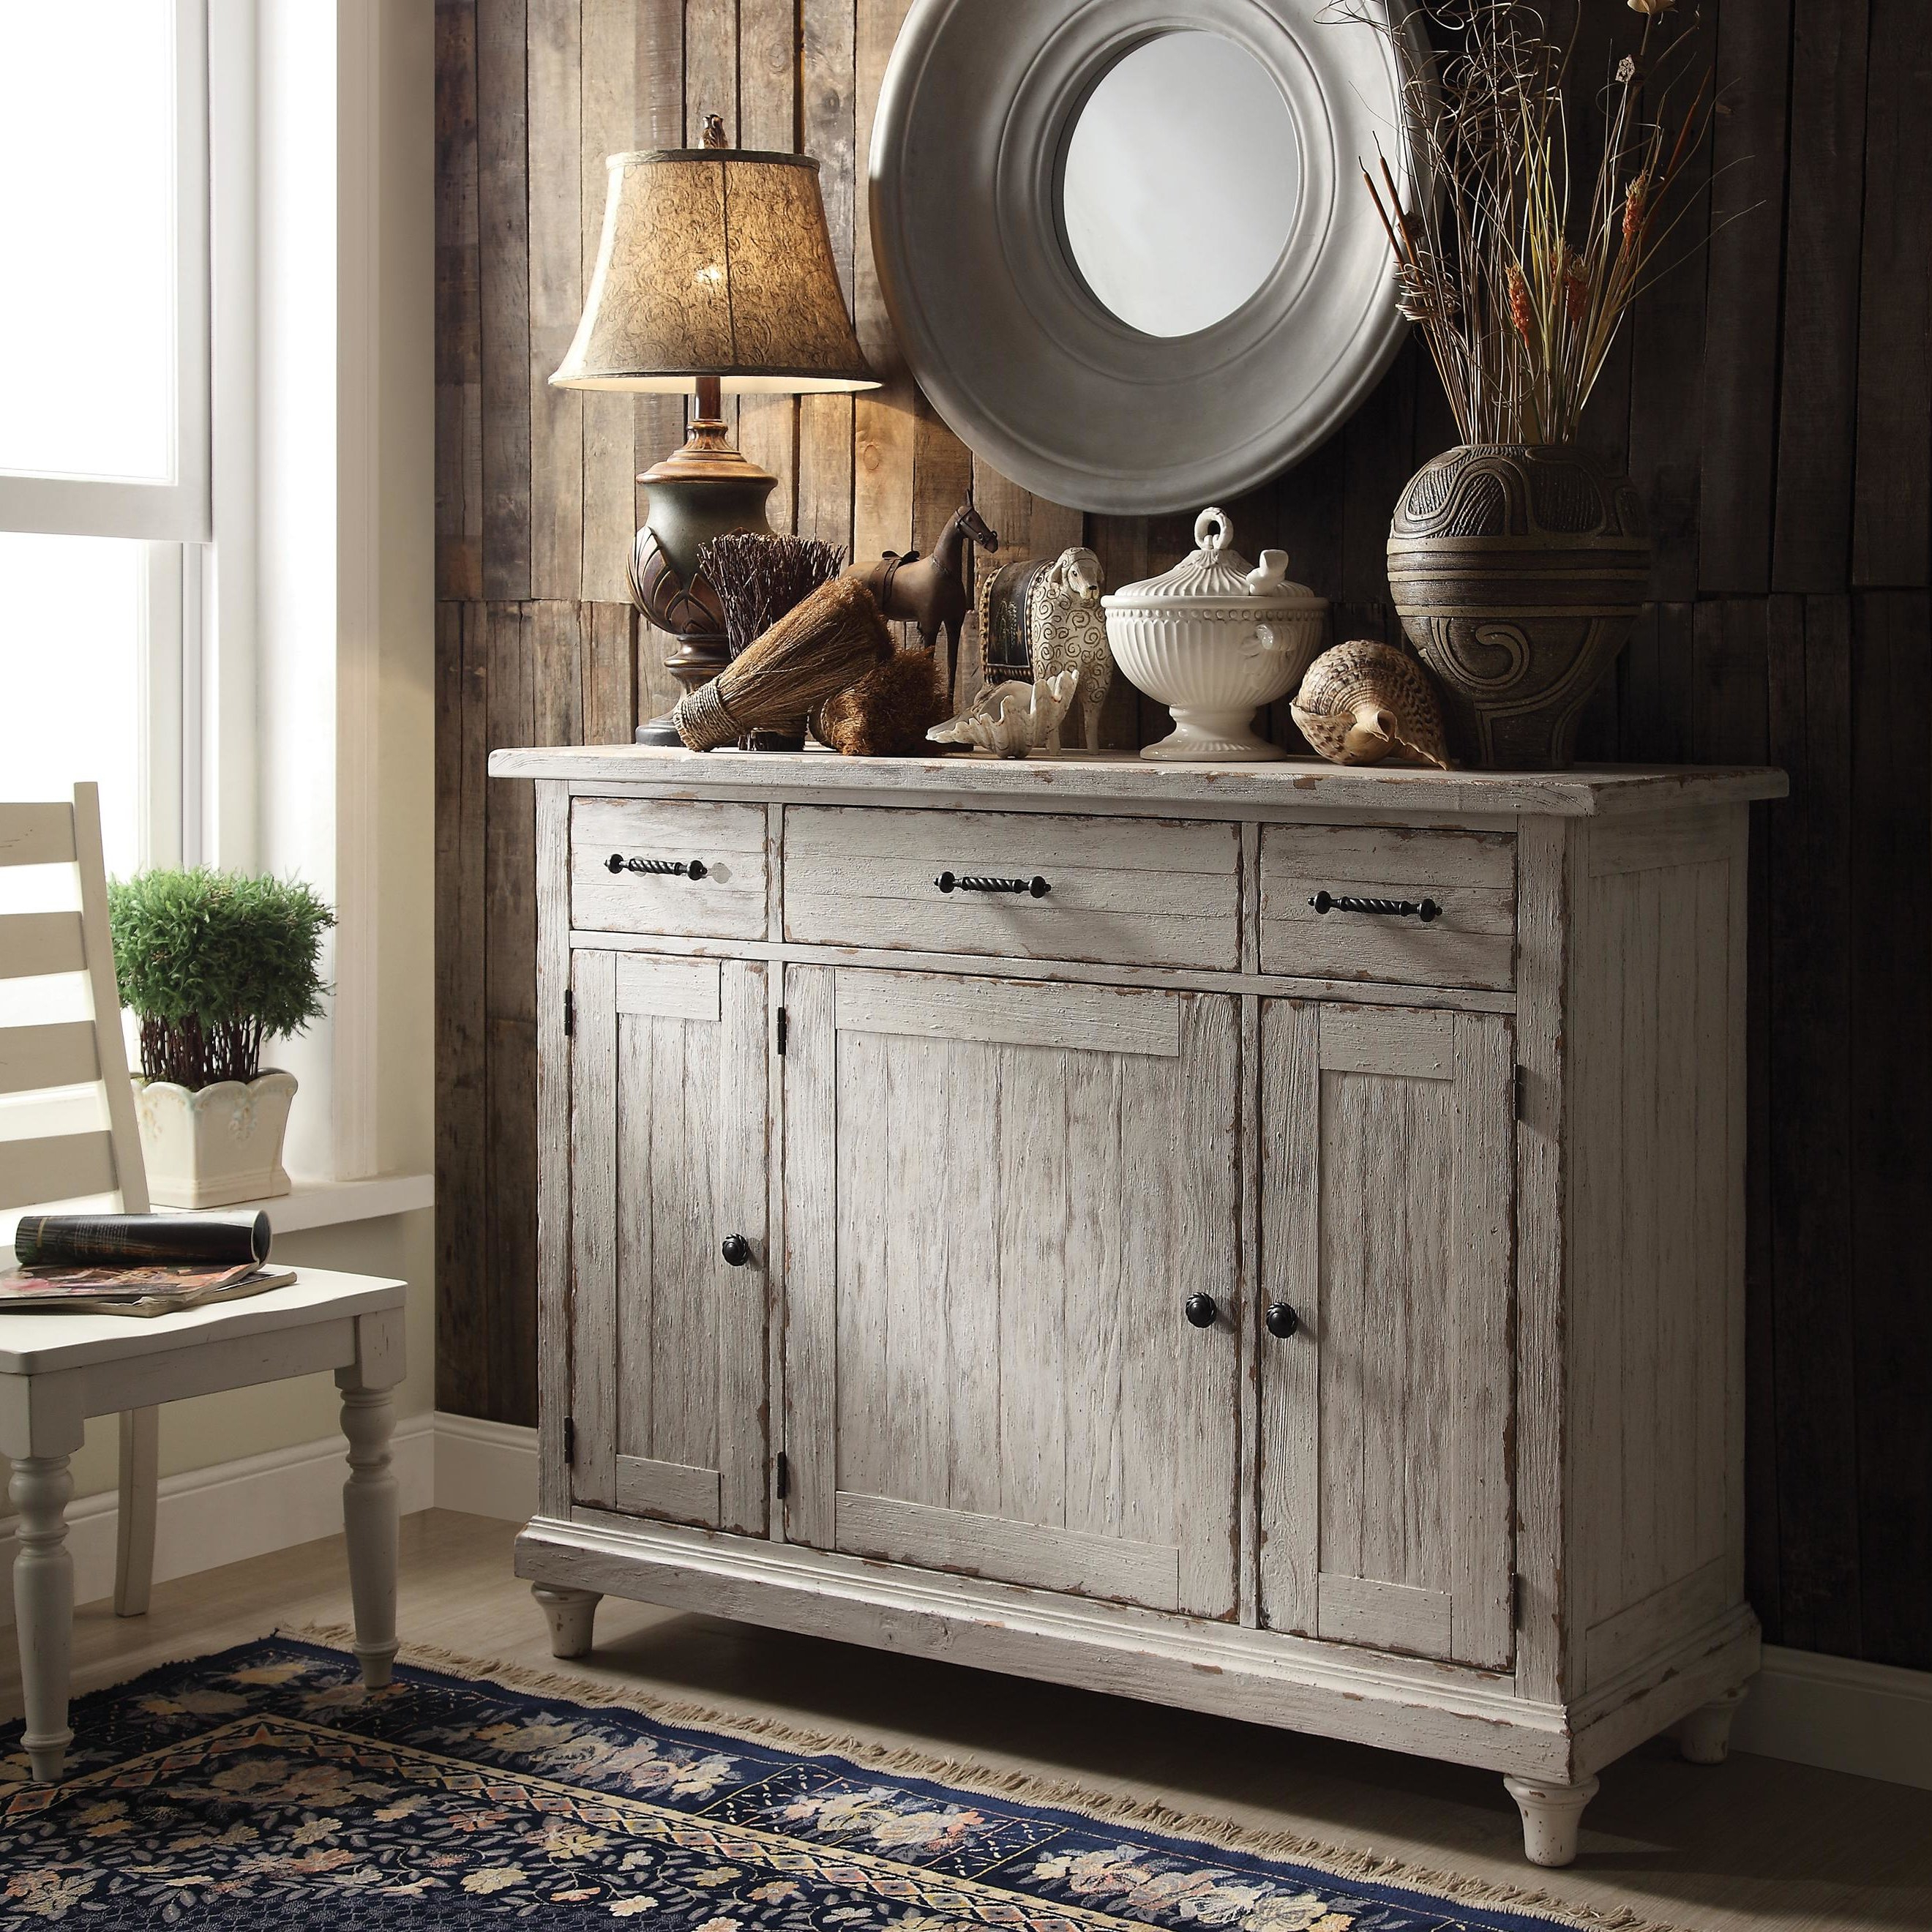 Farmhouse & Rustic Sideboards & Buffets | Birch Lane Within Cambrai Sideboards (View 8 of 20)